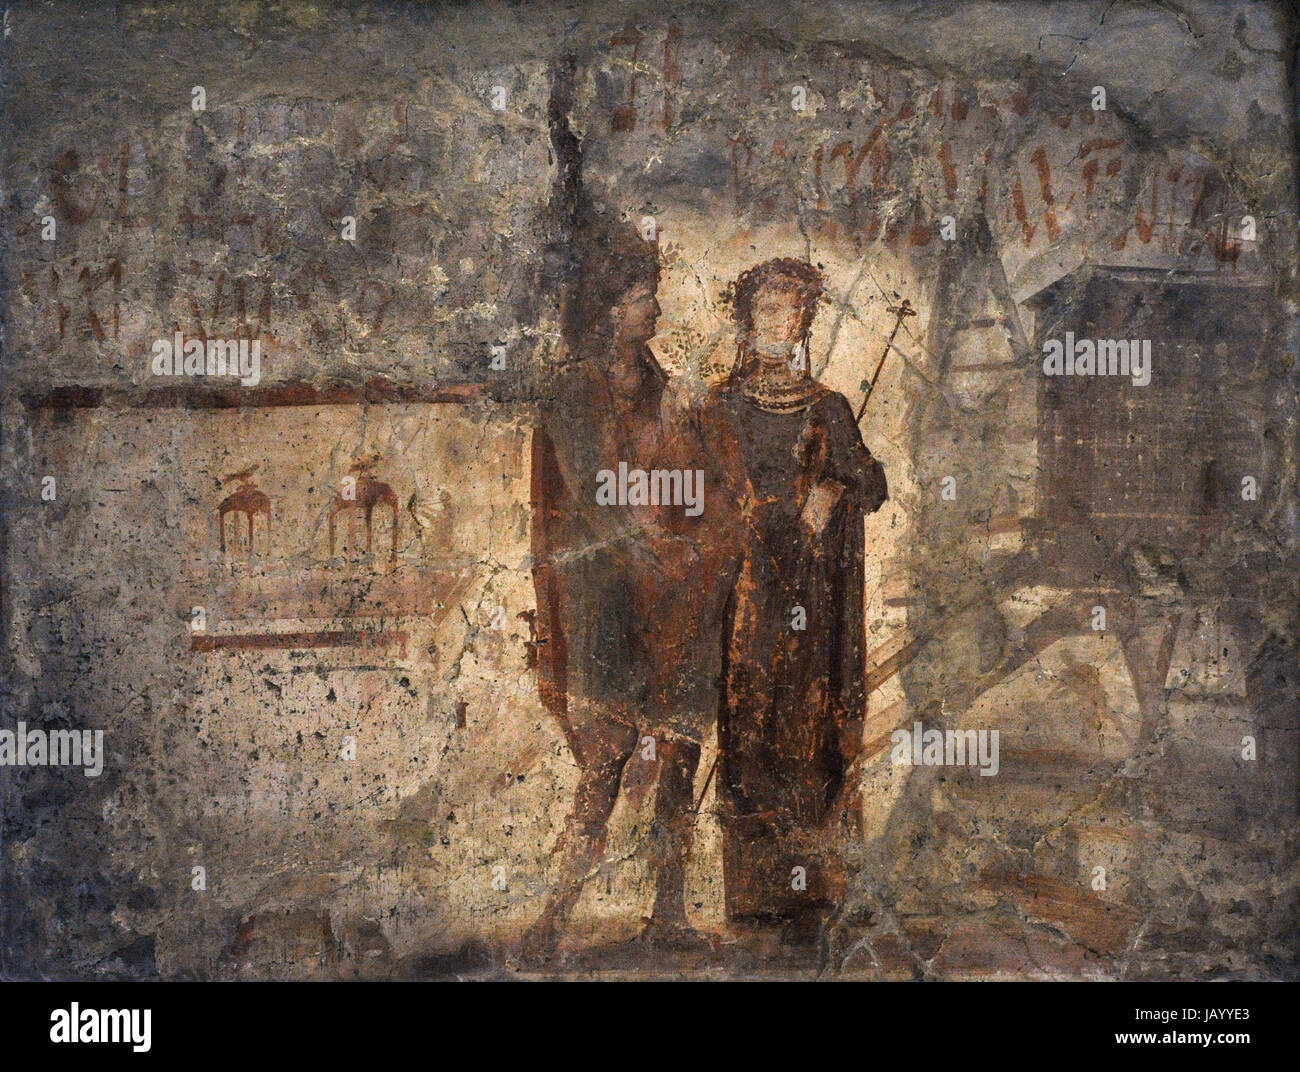 The painting of Liber Pater, recognizable from his castellated crown, the branch in his hands and his shoes, and - Stock Image